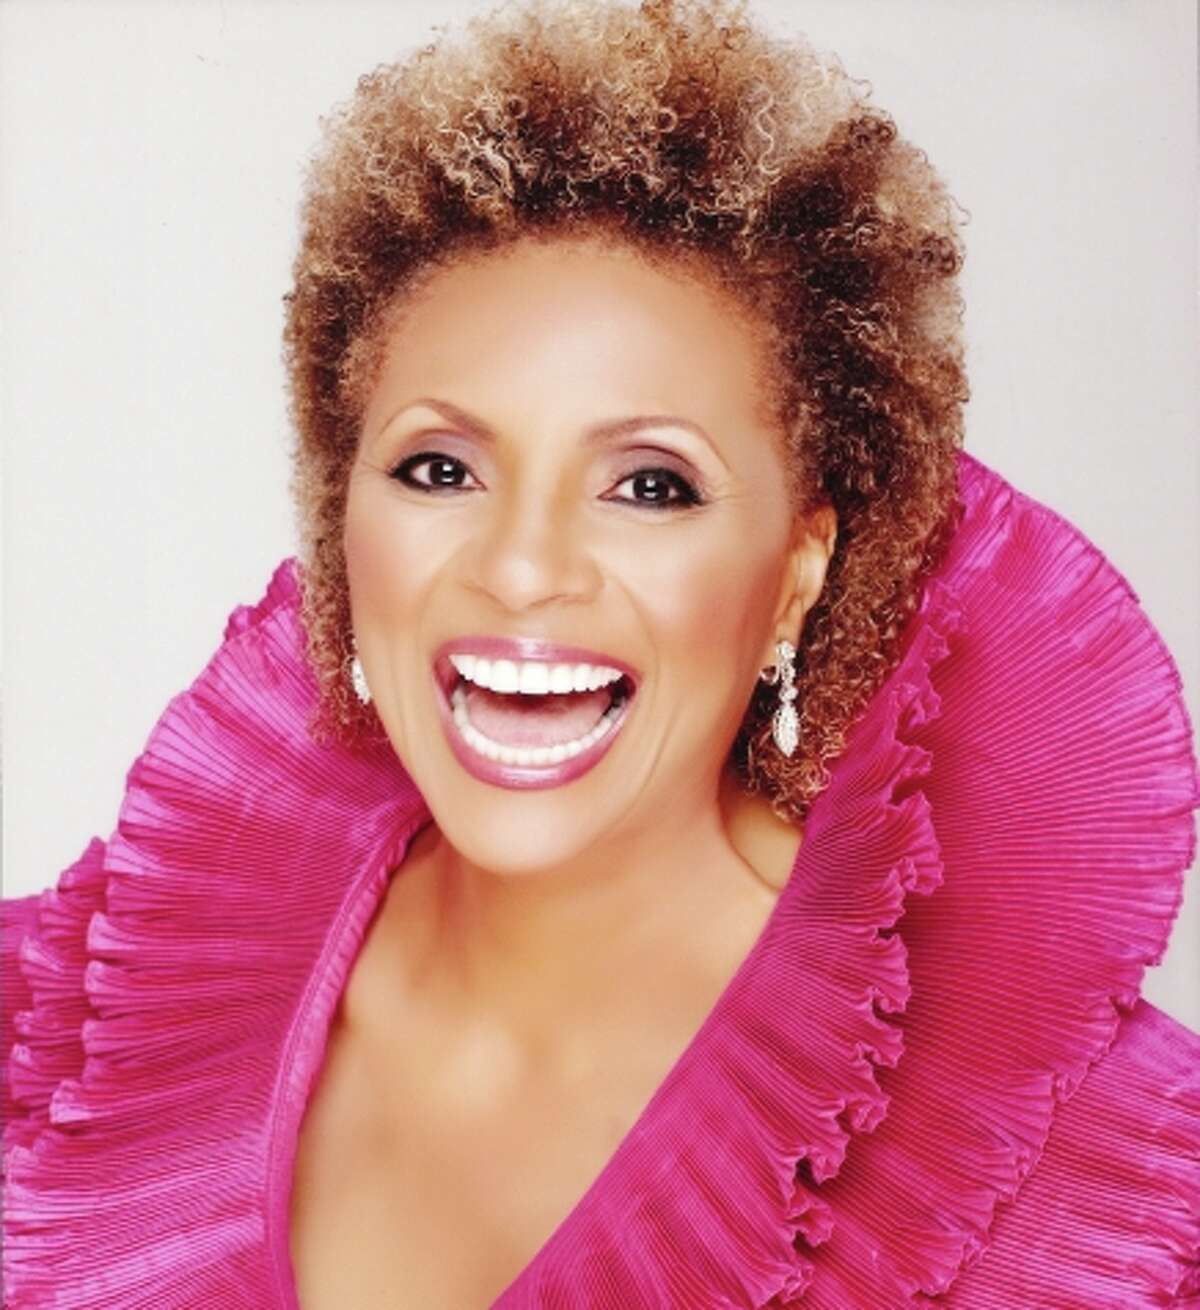 Leslie Uggams will perform Sunday at Bay Area Cabaret.